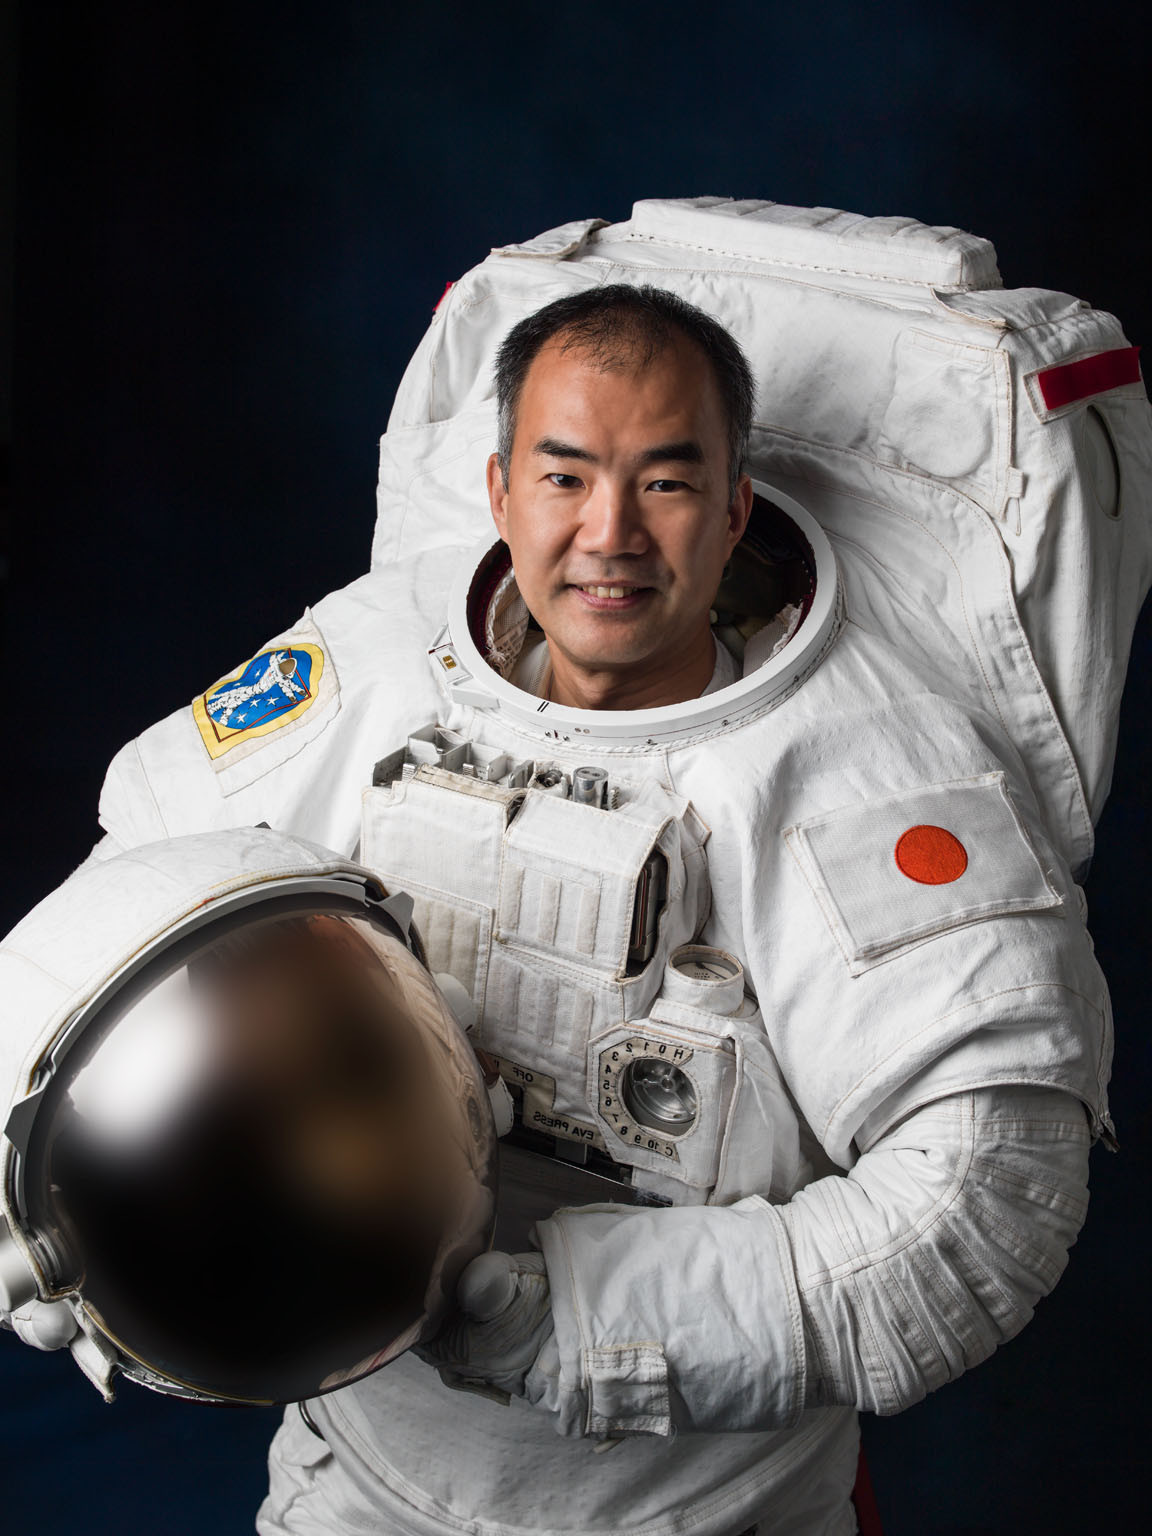 Two astronauts have been appointed as Tokyo 2020 Torch Relay space ambassadors ©JAXA